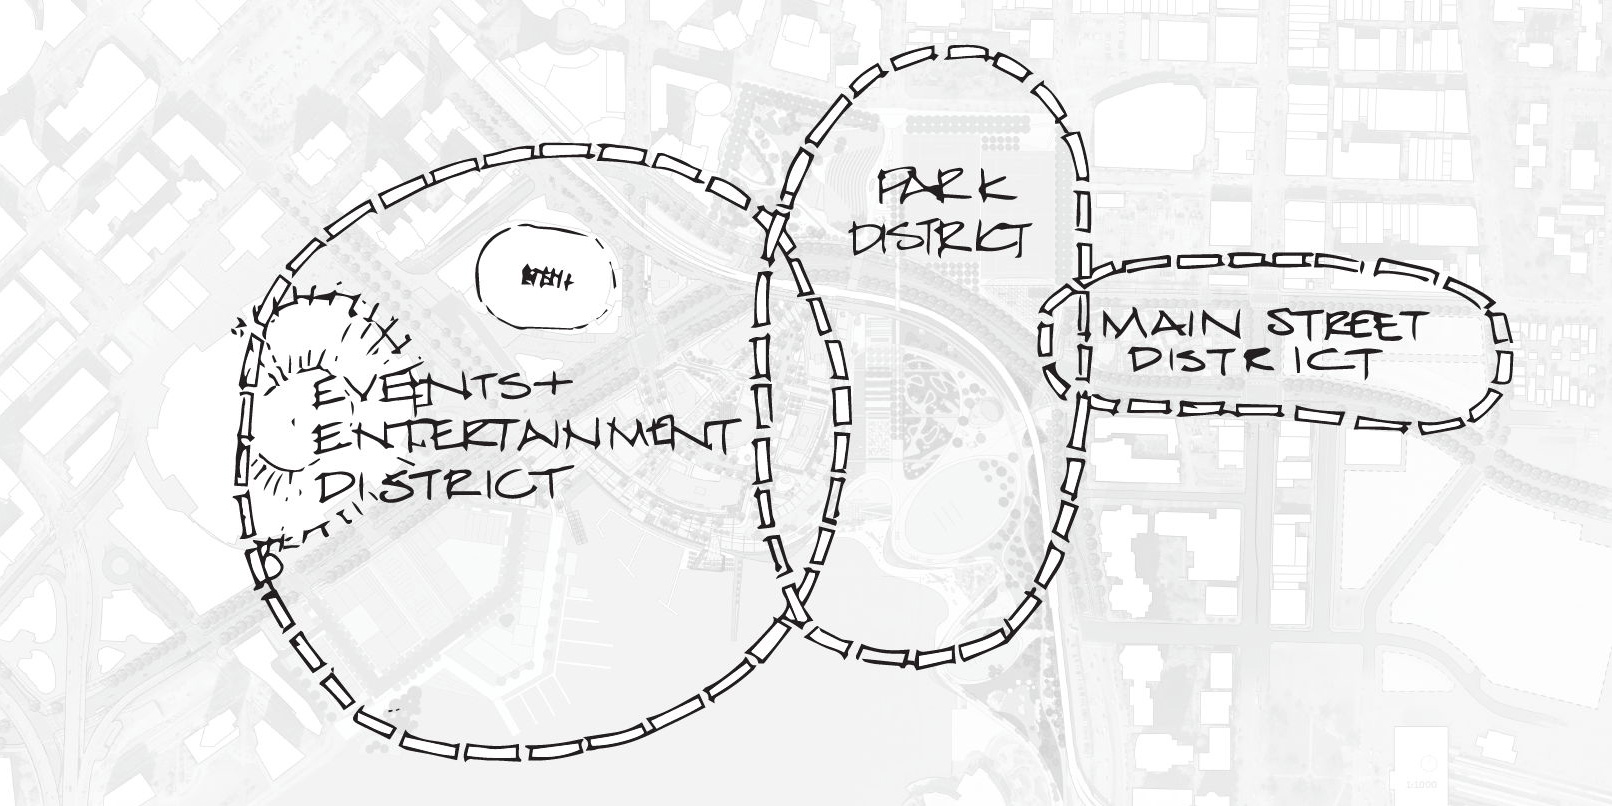 Diagram of the three distinct districts in Northeast False Creek, from west to east, the Events and Entertainment District, Park District, and Main Street District